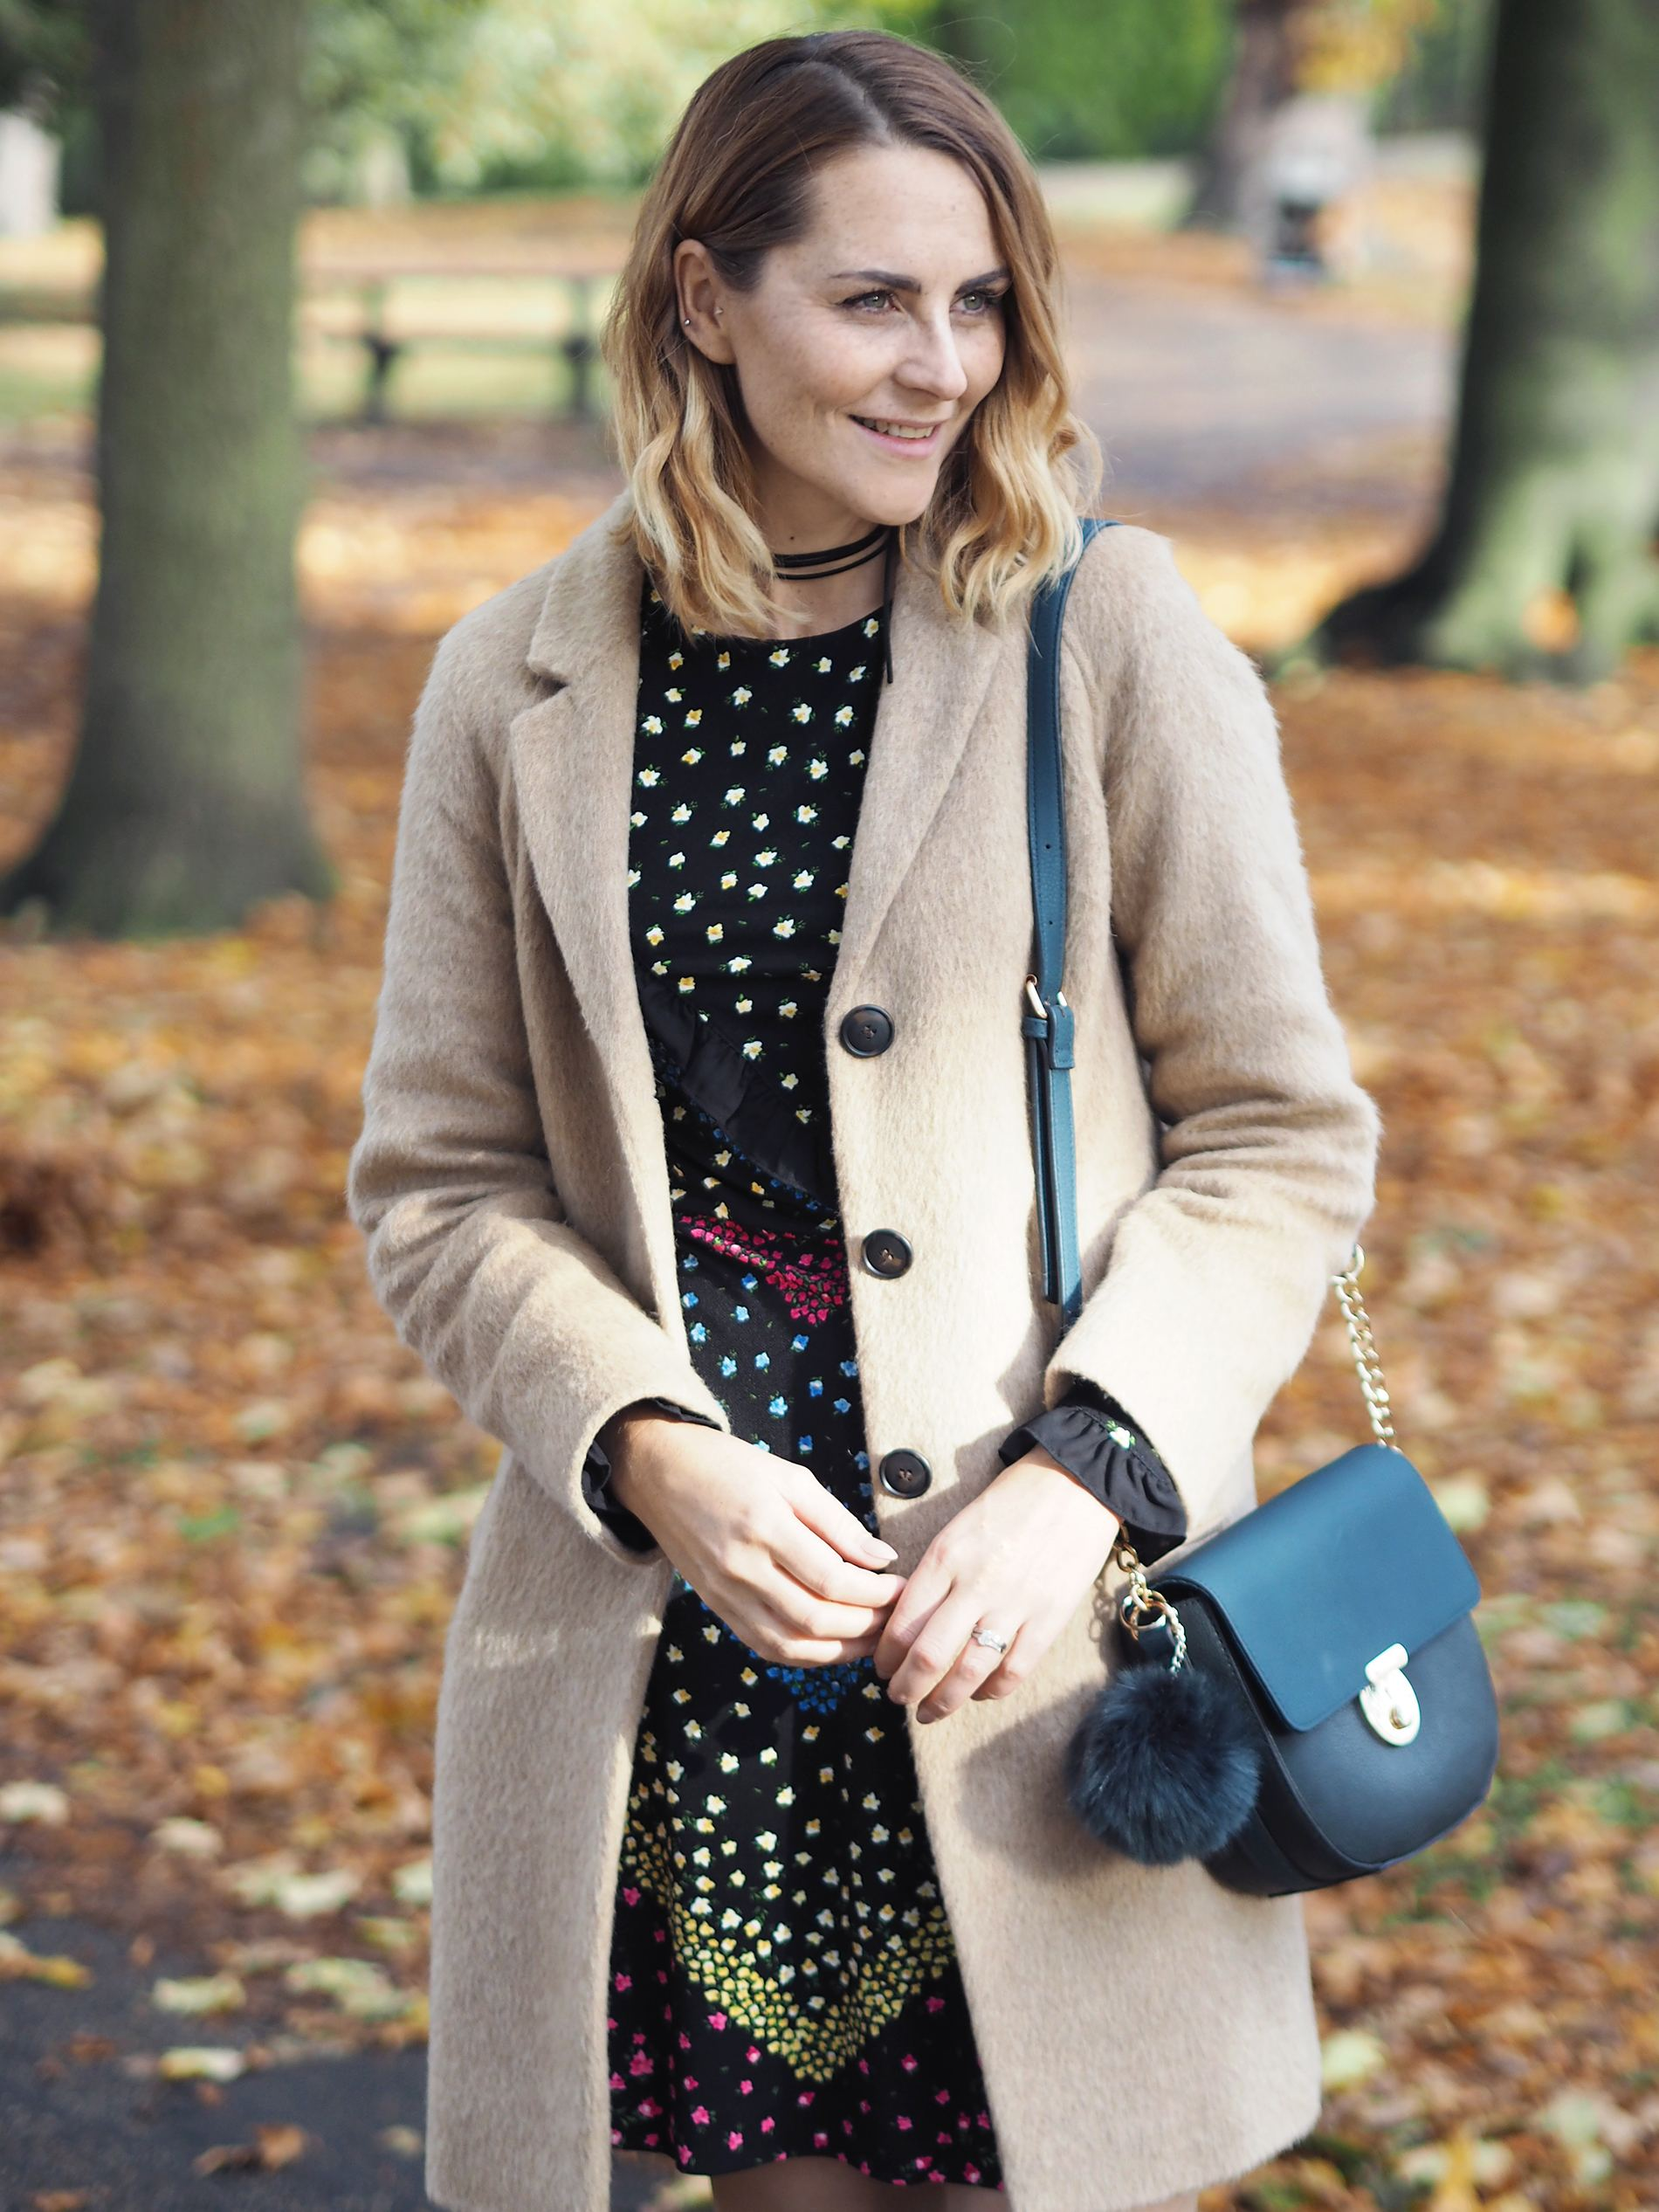 camel coat and floral dress autumn outfit